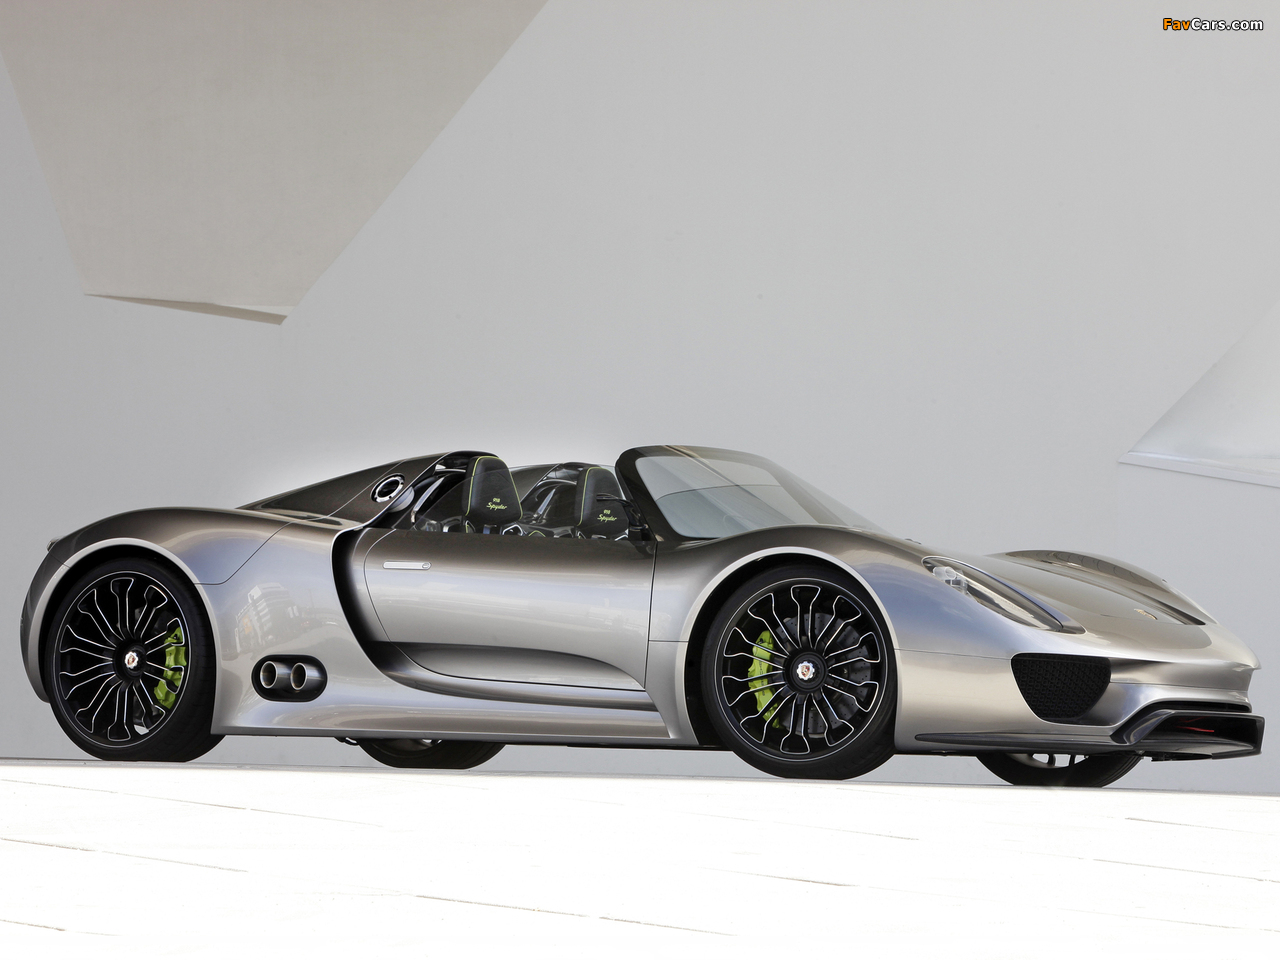 porsche 918 spyder concept 2010 pictures 1280x960. Black Bedroom Furniture Sets. Home Design Ideas